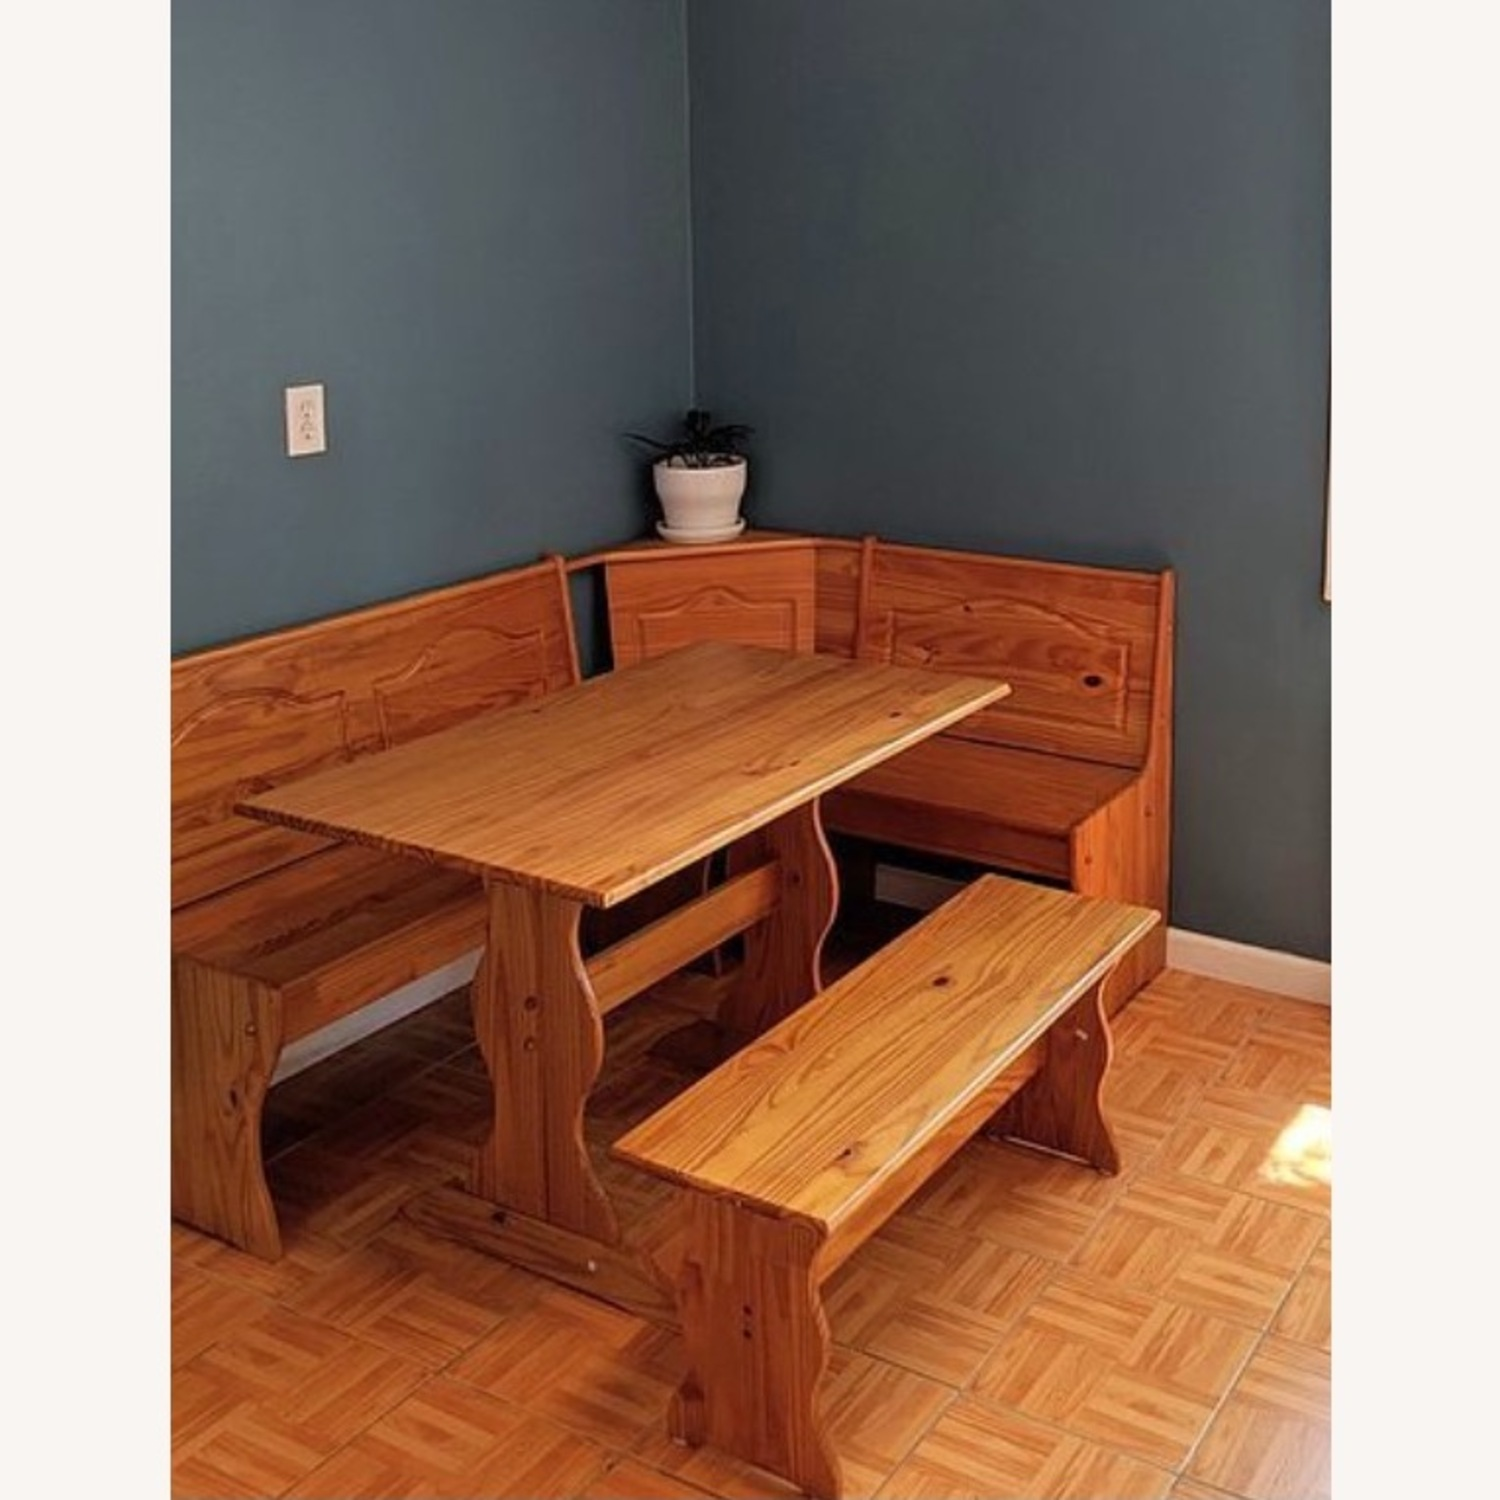 Dining Nook Made in Brazil - image-1